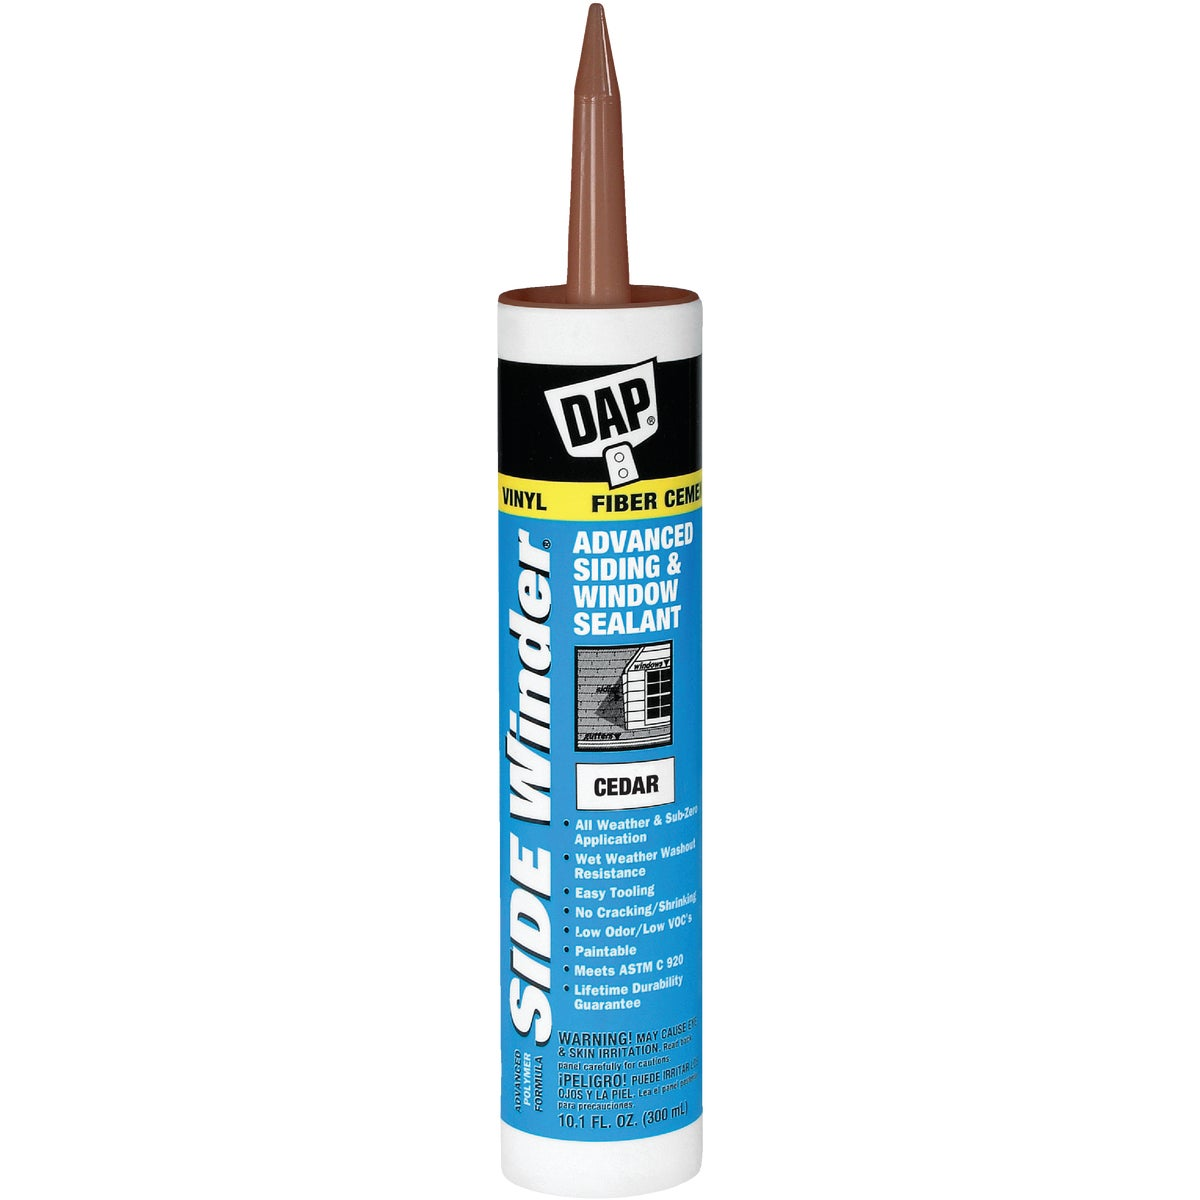 CEDAR SIDEWINDER SEALANT - 00823 by Dap Inc